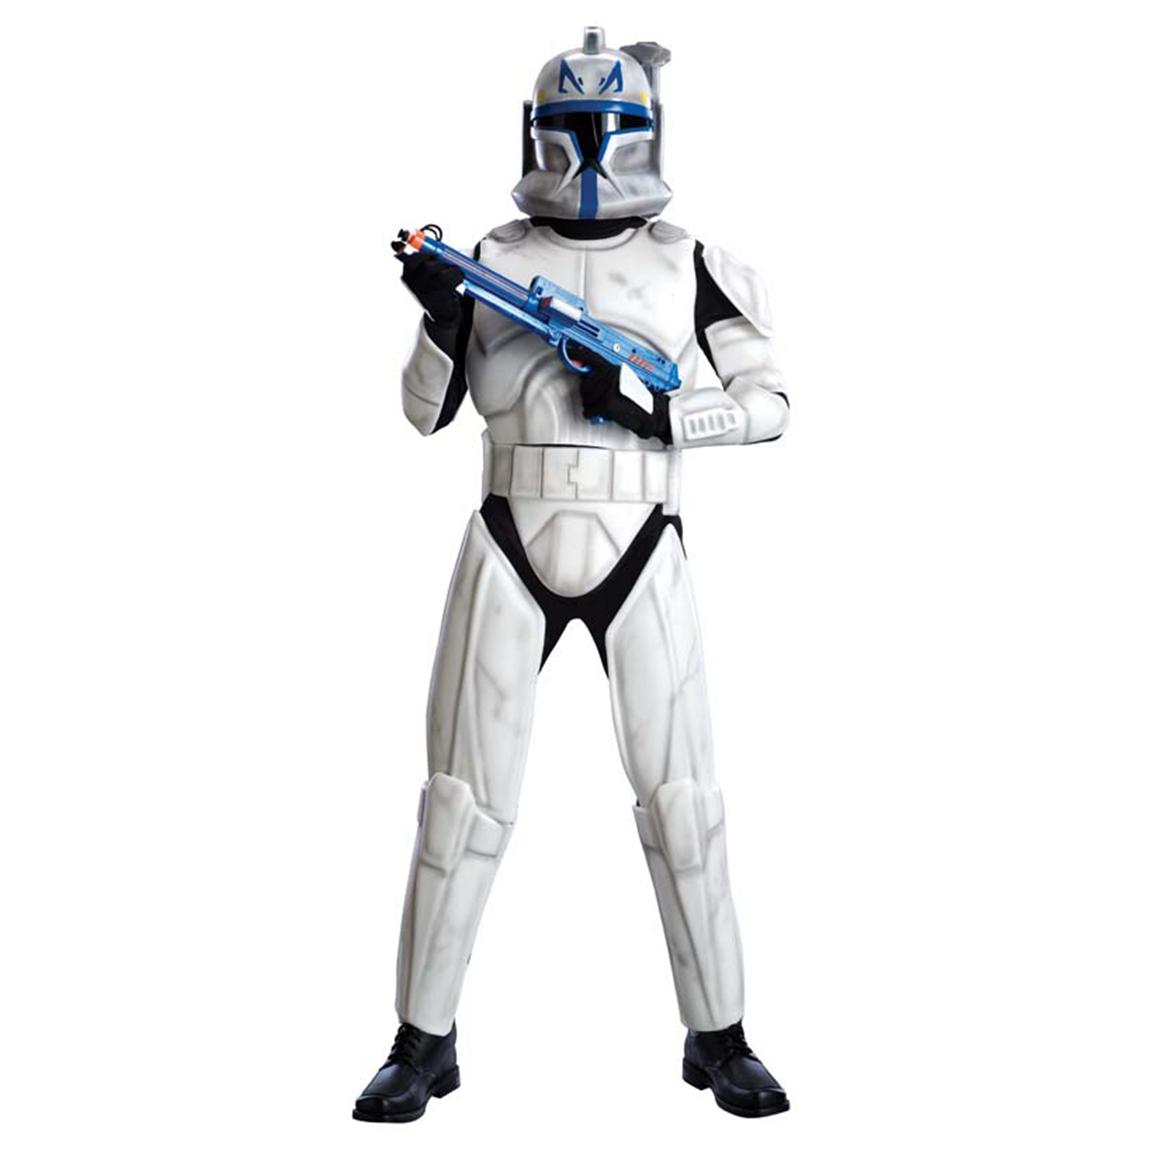 Morris Costumes Star Wars™ Clone Wars Deluxe Clonetrooper Leader Rex Costume